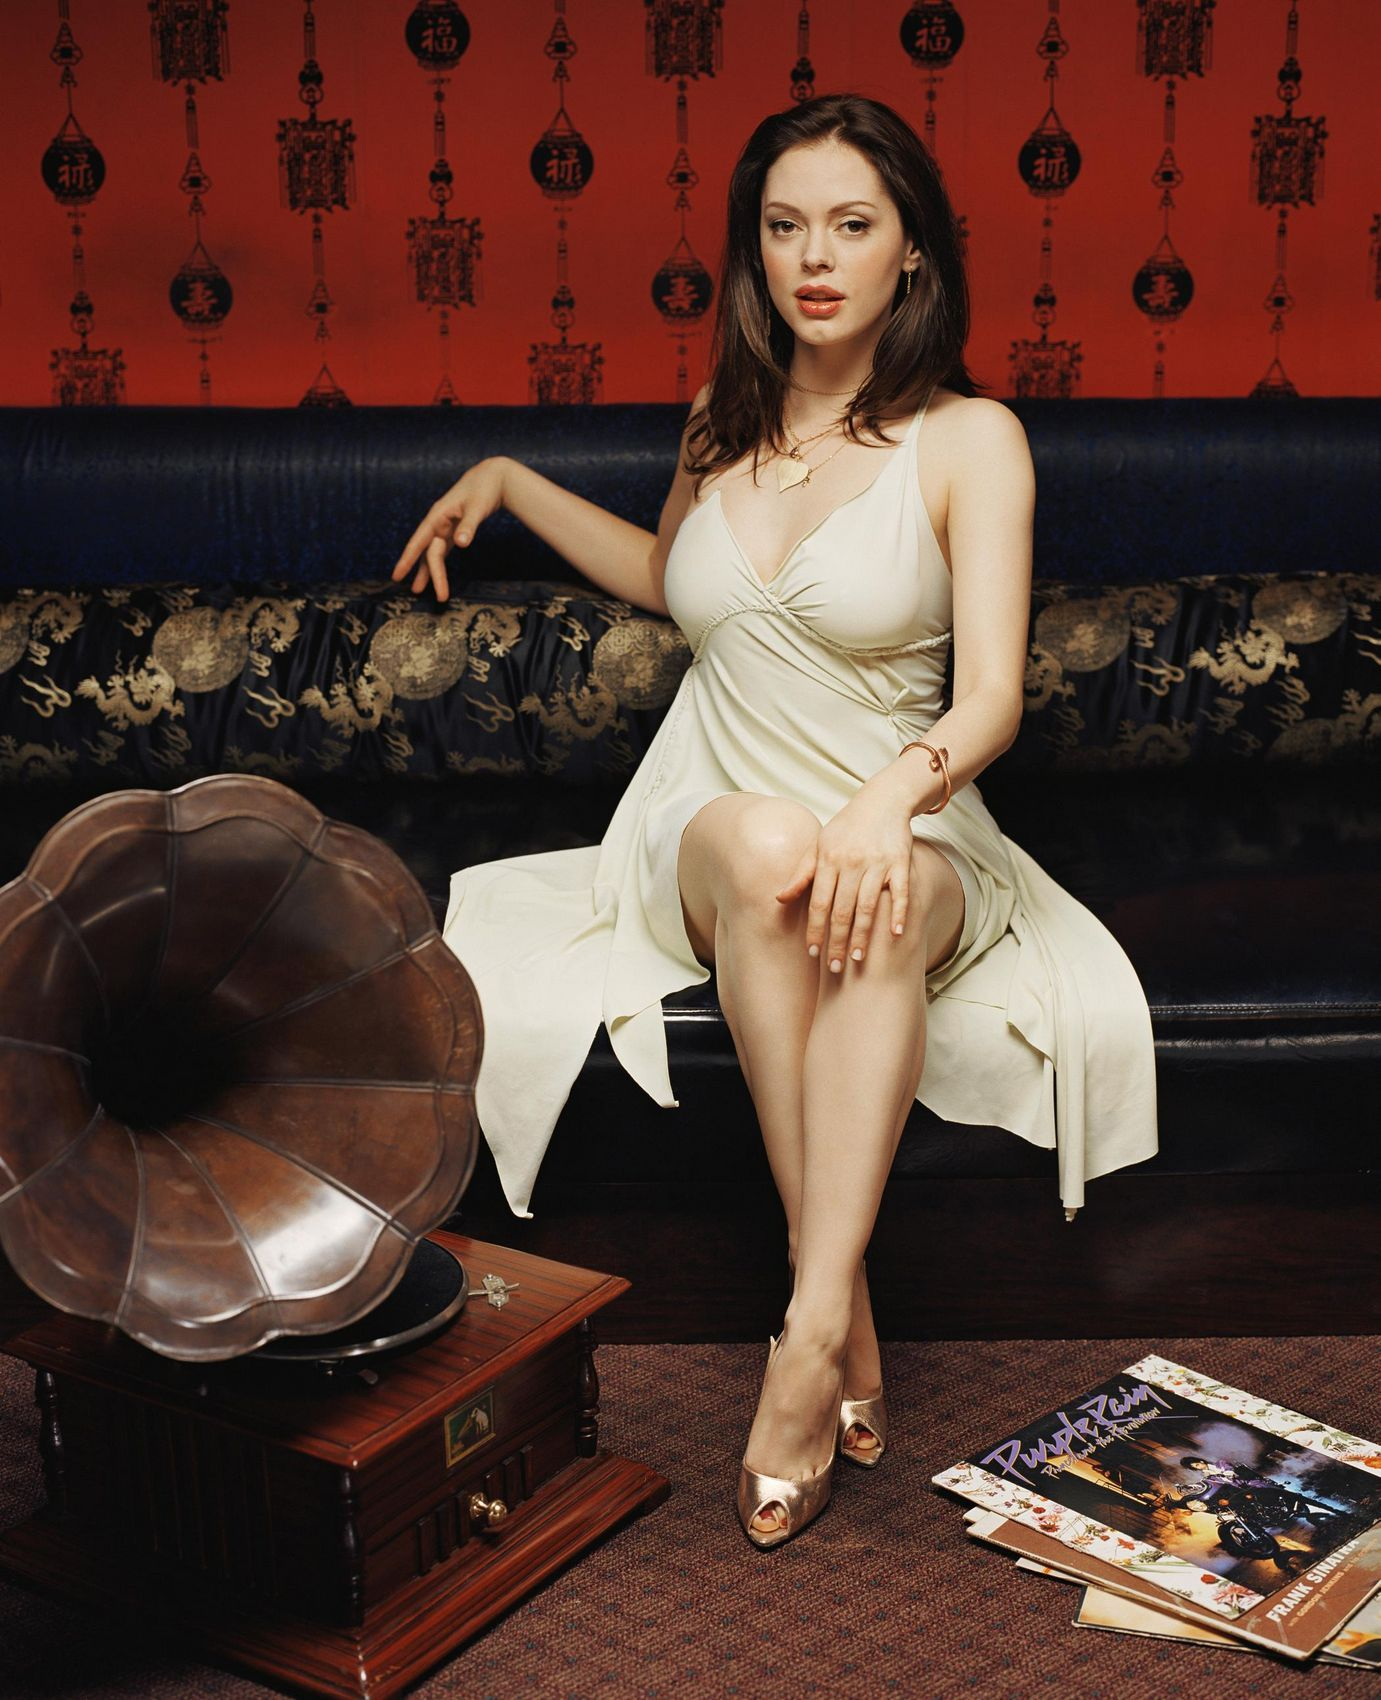 Rose mcgowan sexy pic